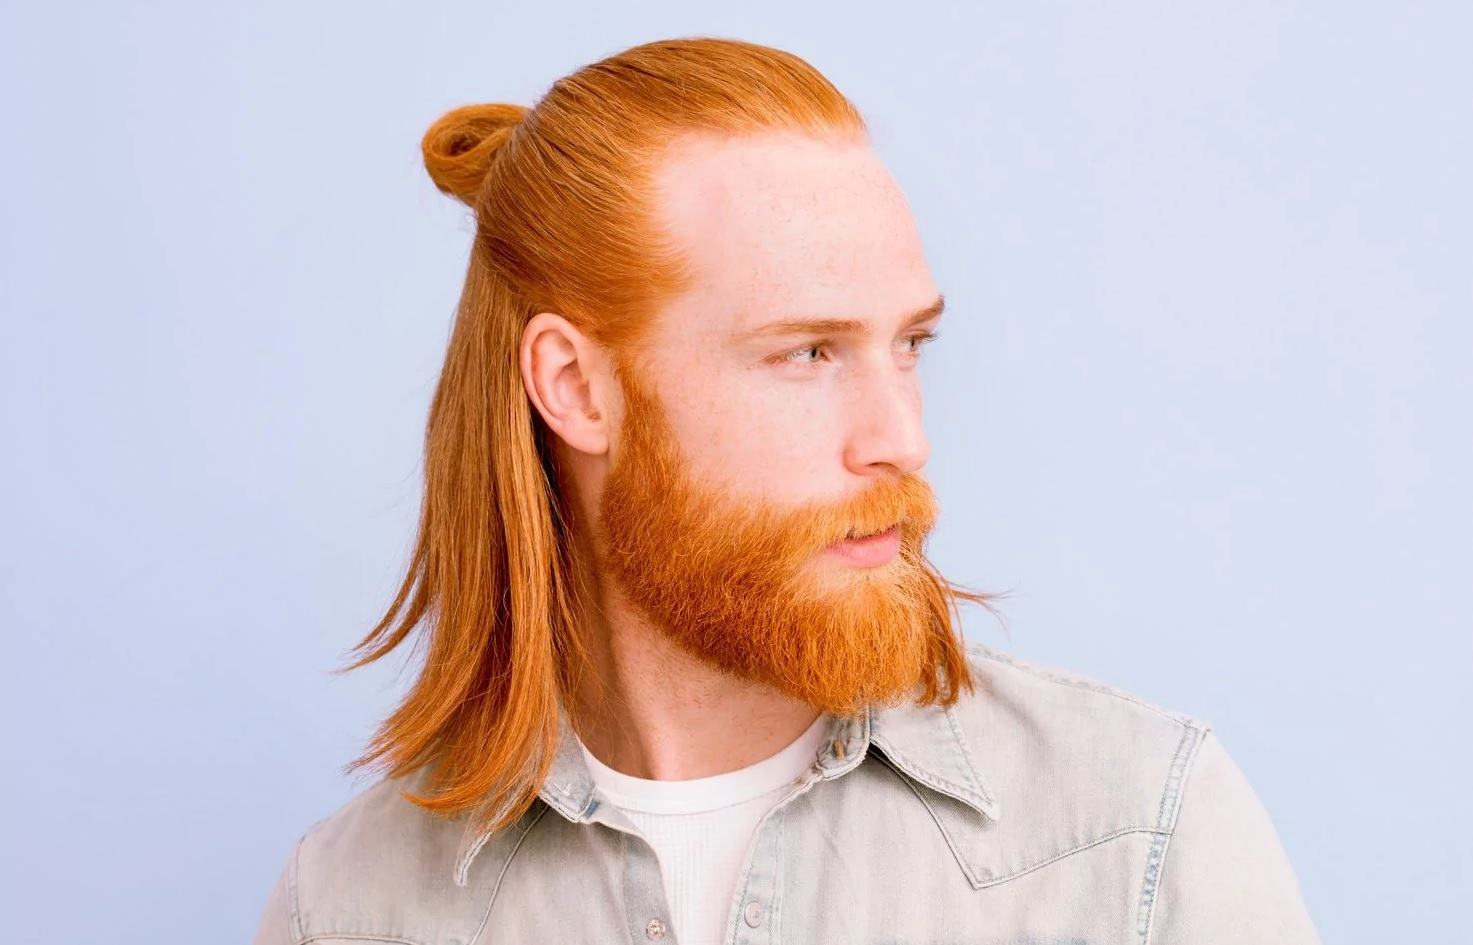 How to Do a Half Man Bun: An Easy Step-by-Step Guide